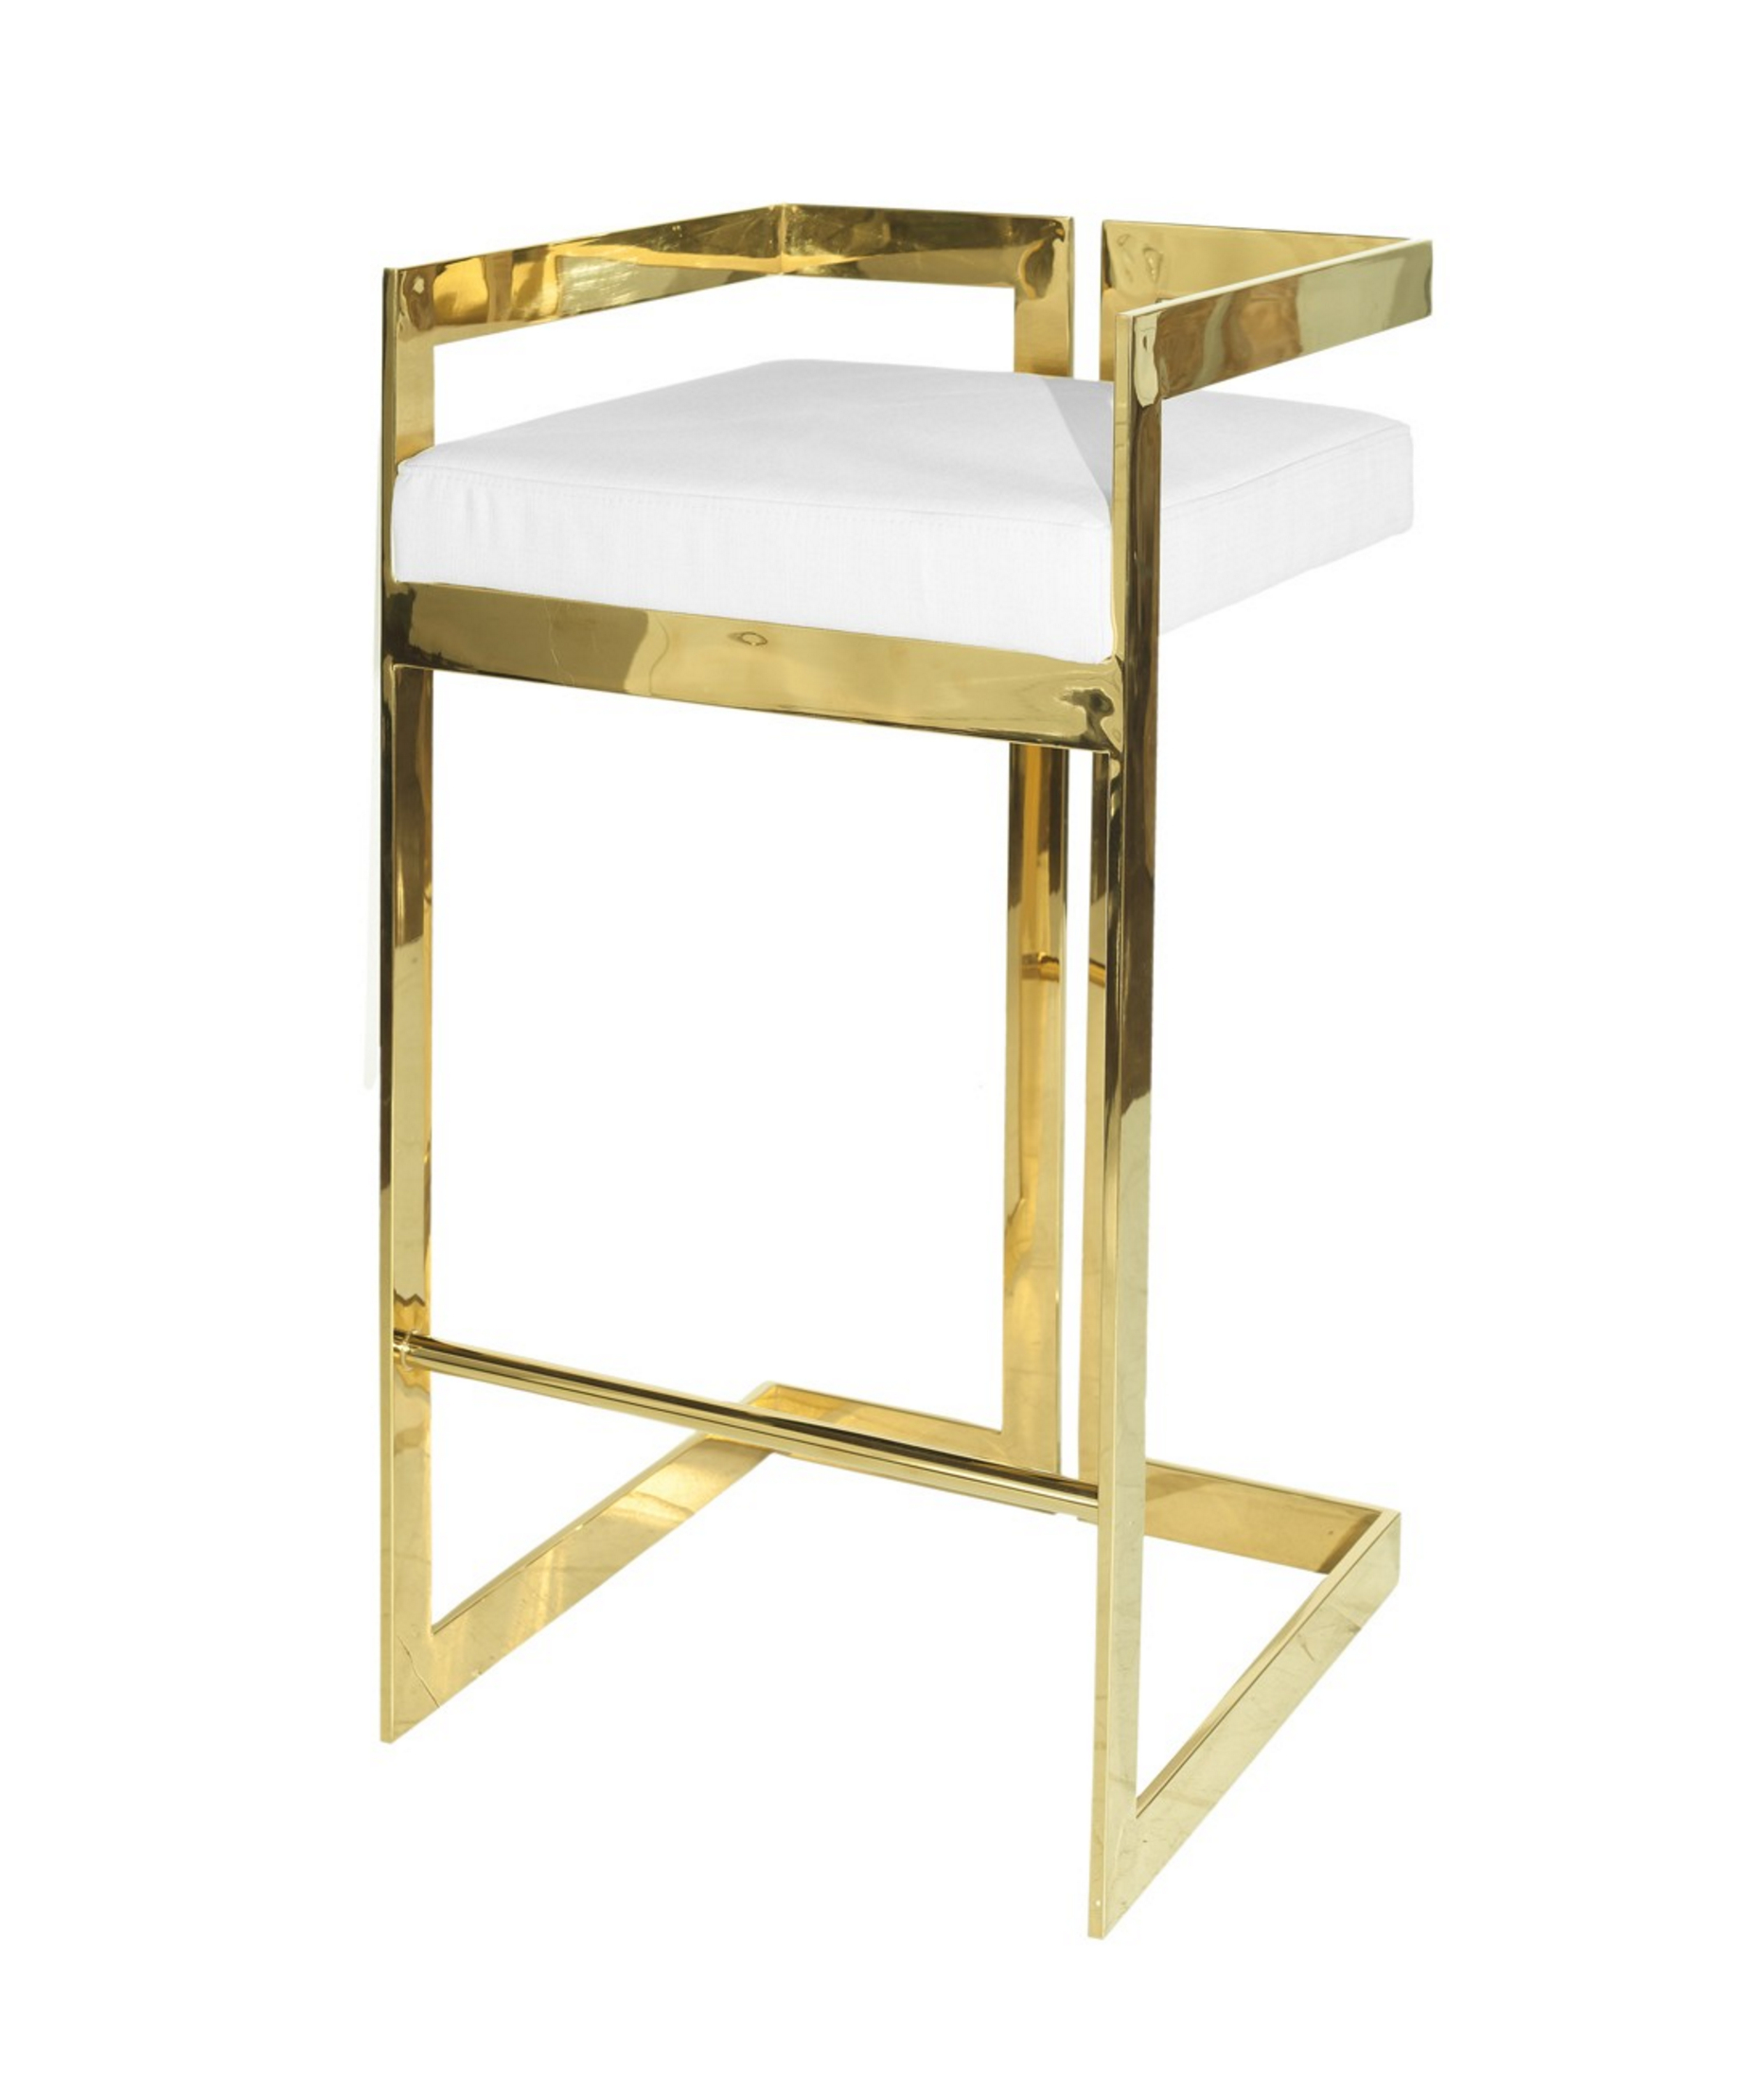 Hearst Brass & White Pu Leather Bar Stool Pertaining To Most Recent Hearst Bar Tables (Image 15 of 25)